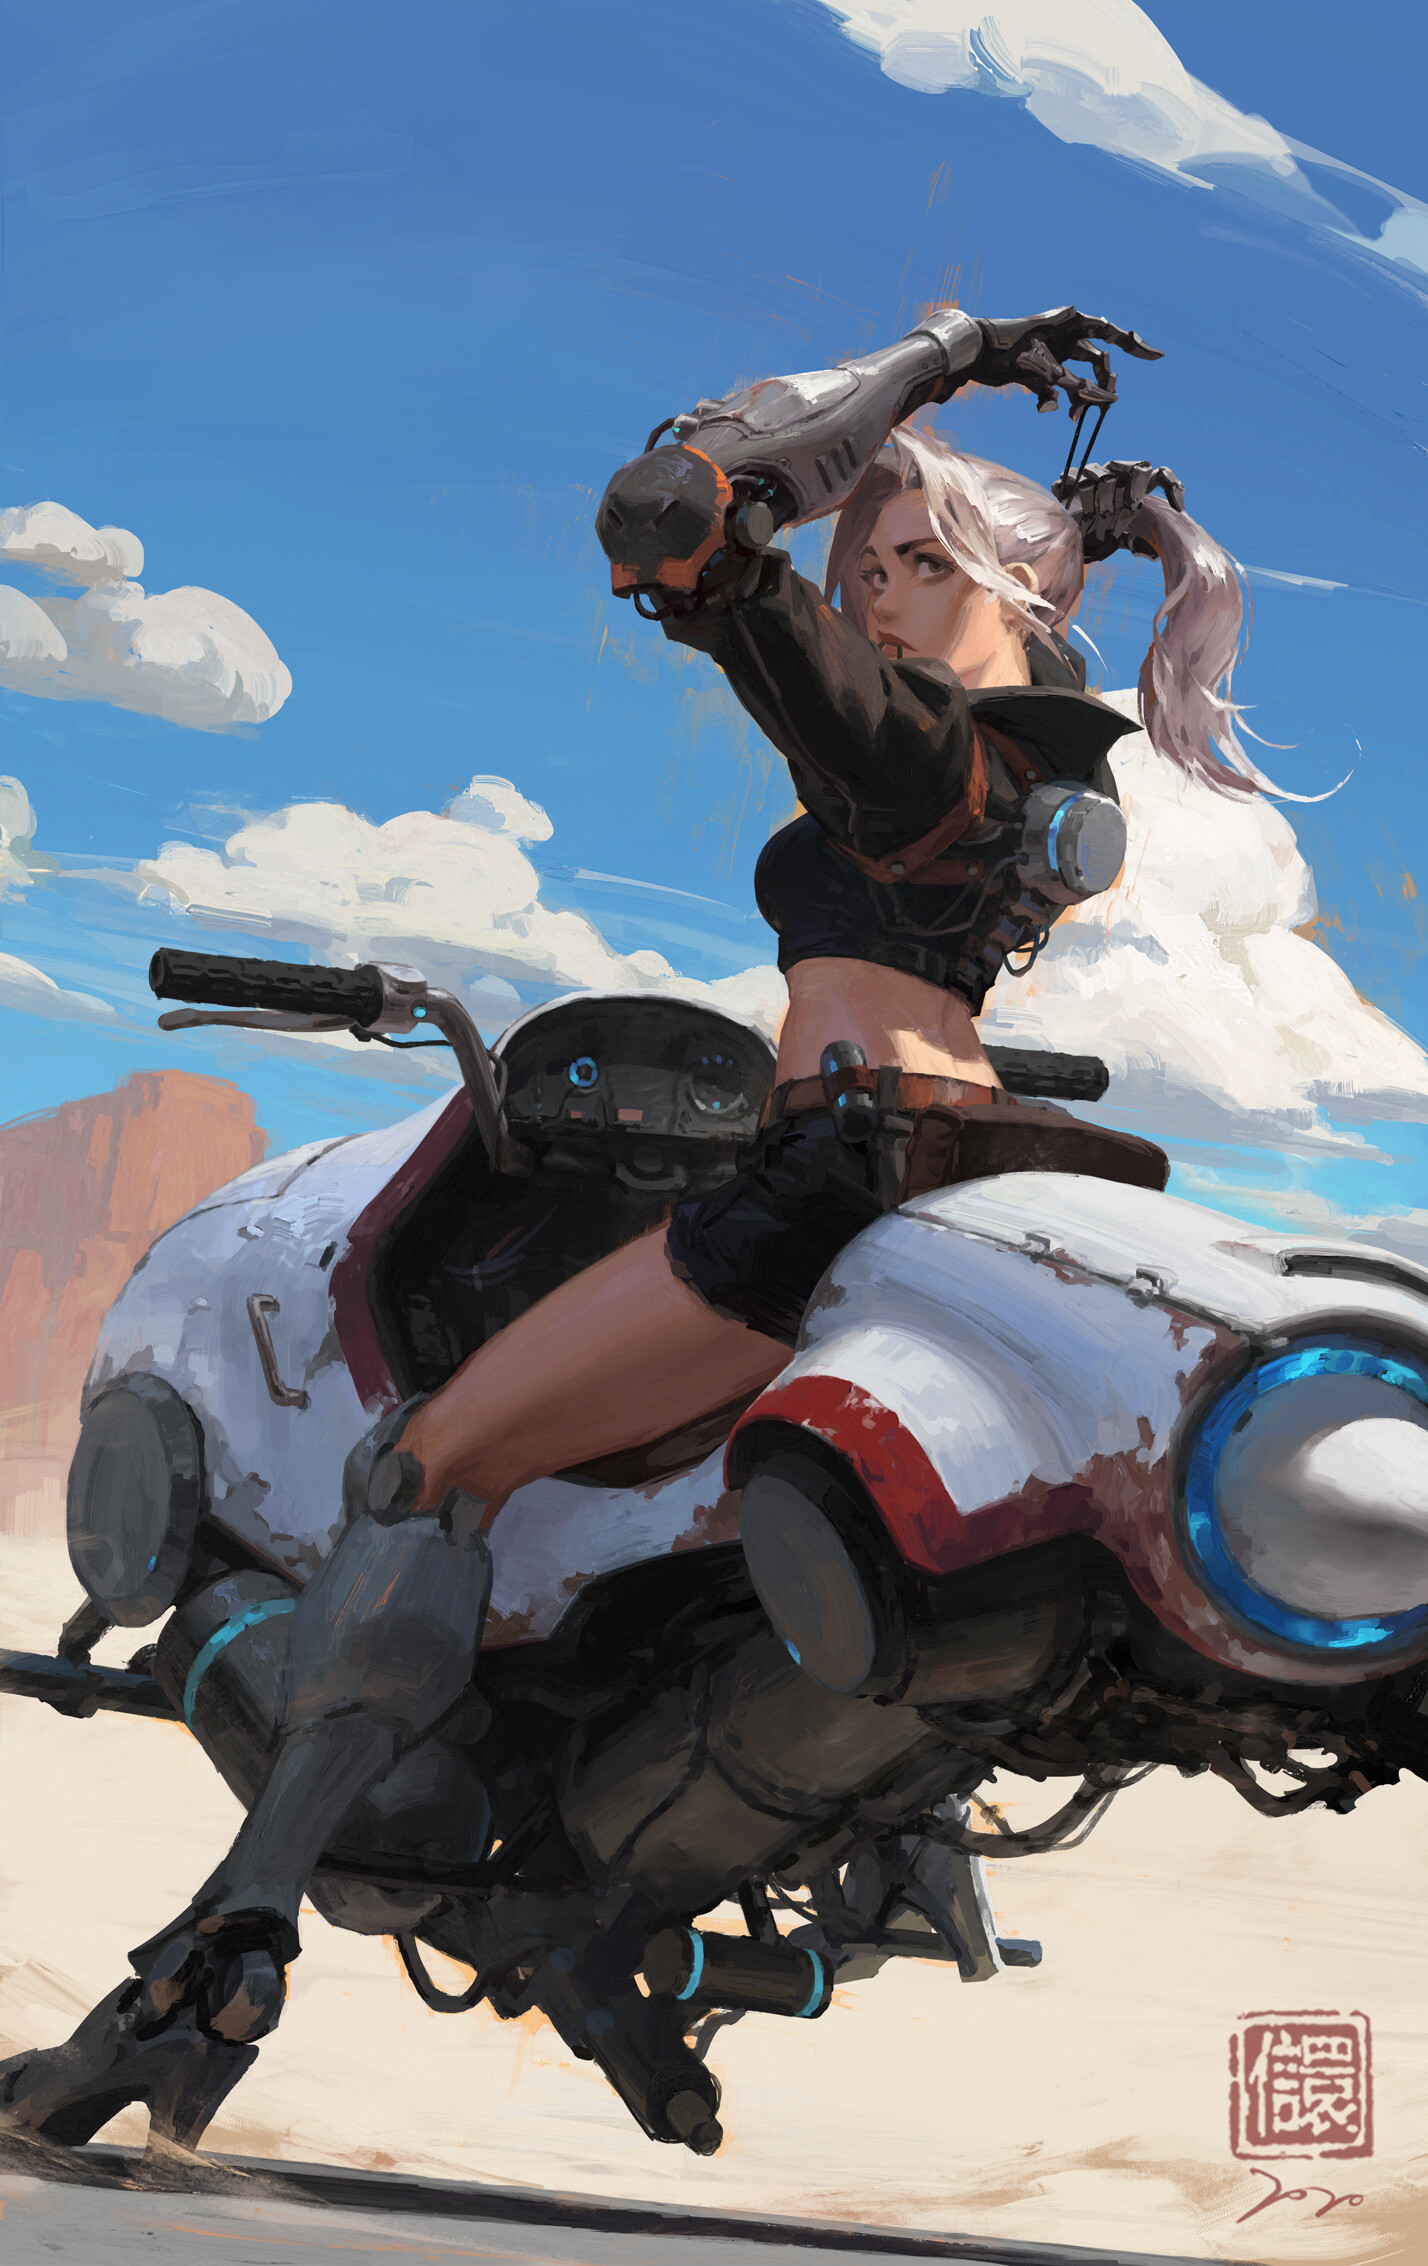 General 1428x2266 character design  bikes biker women science fiction cybernetics ponytail desert wasteland futuristic flying car motorcycle looking back bare midriff arms up sitting legs knee-high boots science fiction women cyborg vehicle sky back ArtStation Kan Liu silver hair clouds